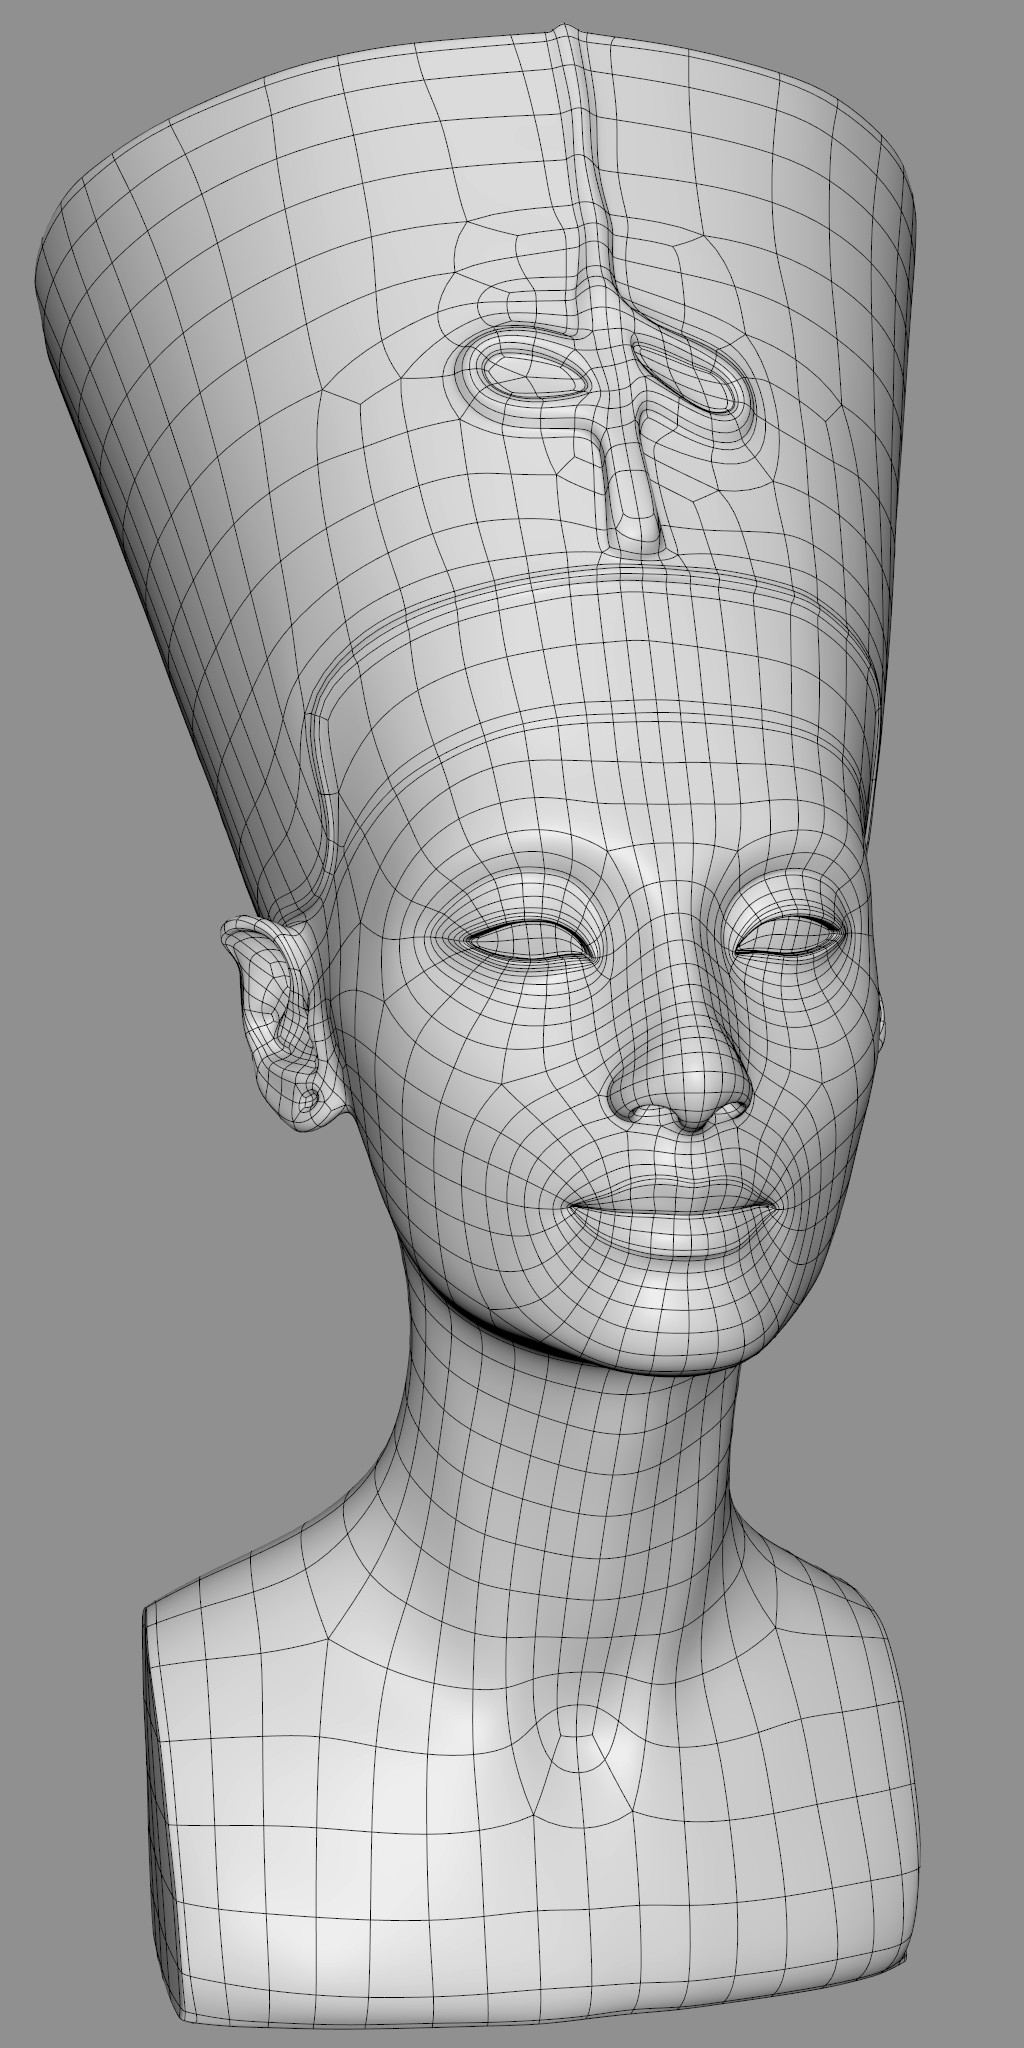 This is a retopo model I did on a scan of the original Nefertiti sculpture.